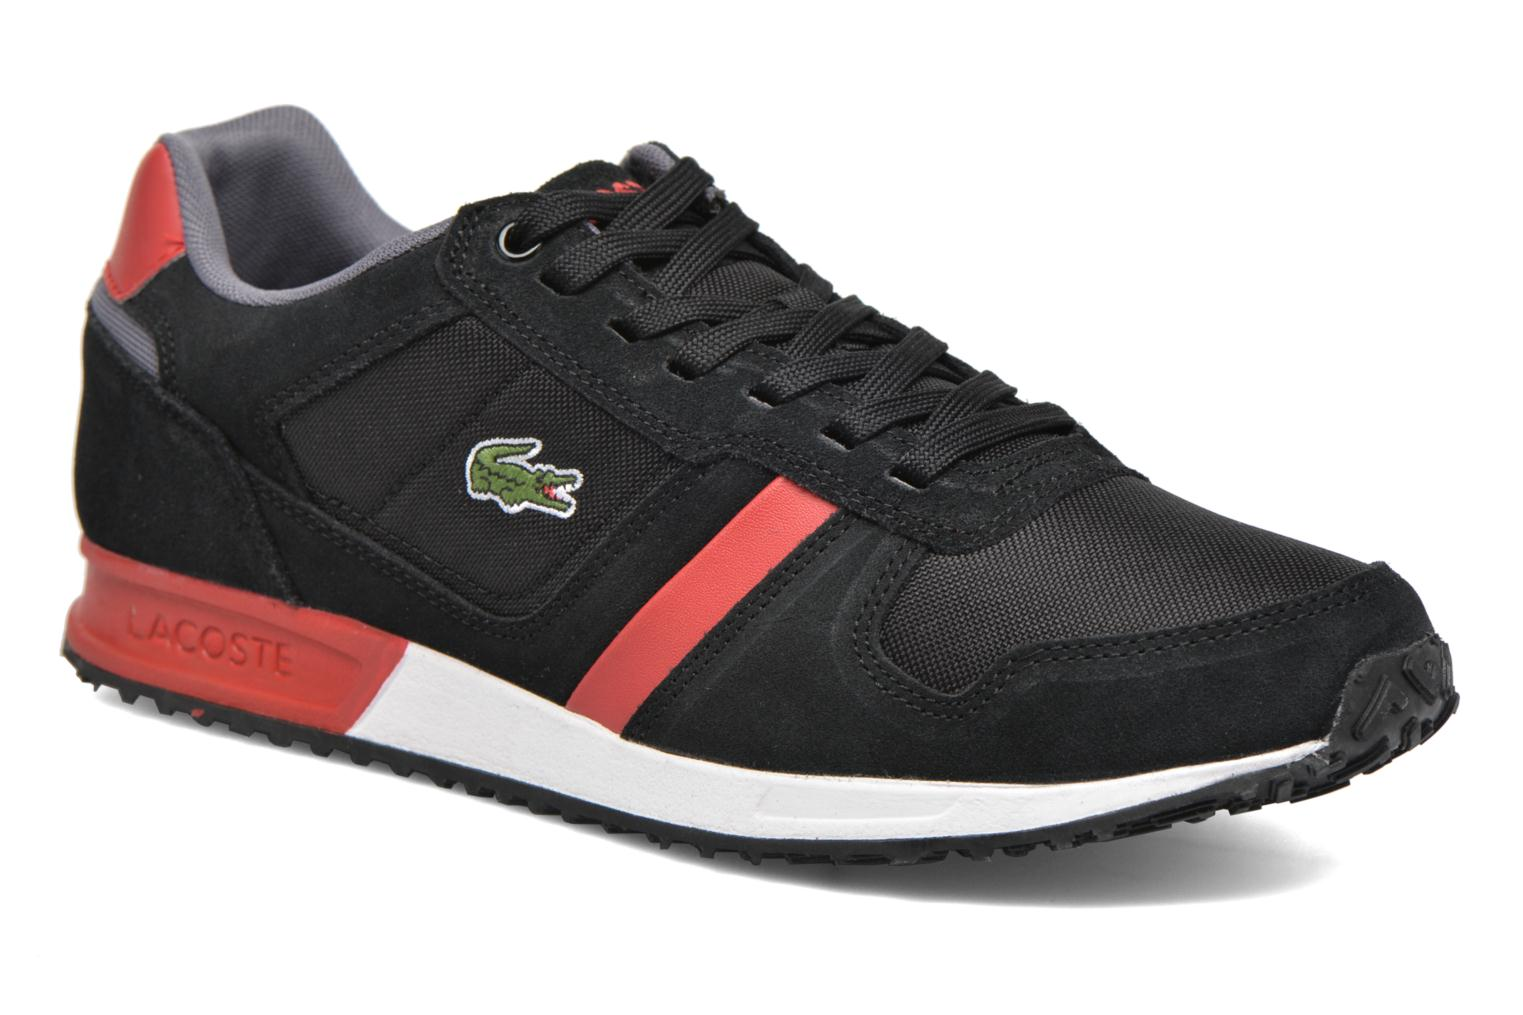 Vauban Snm Black/red